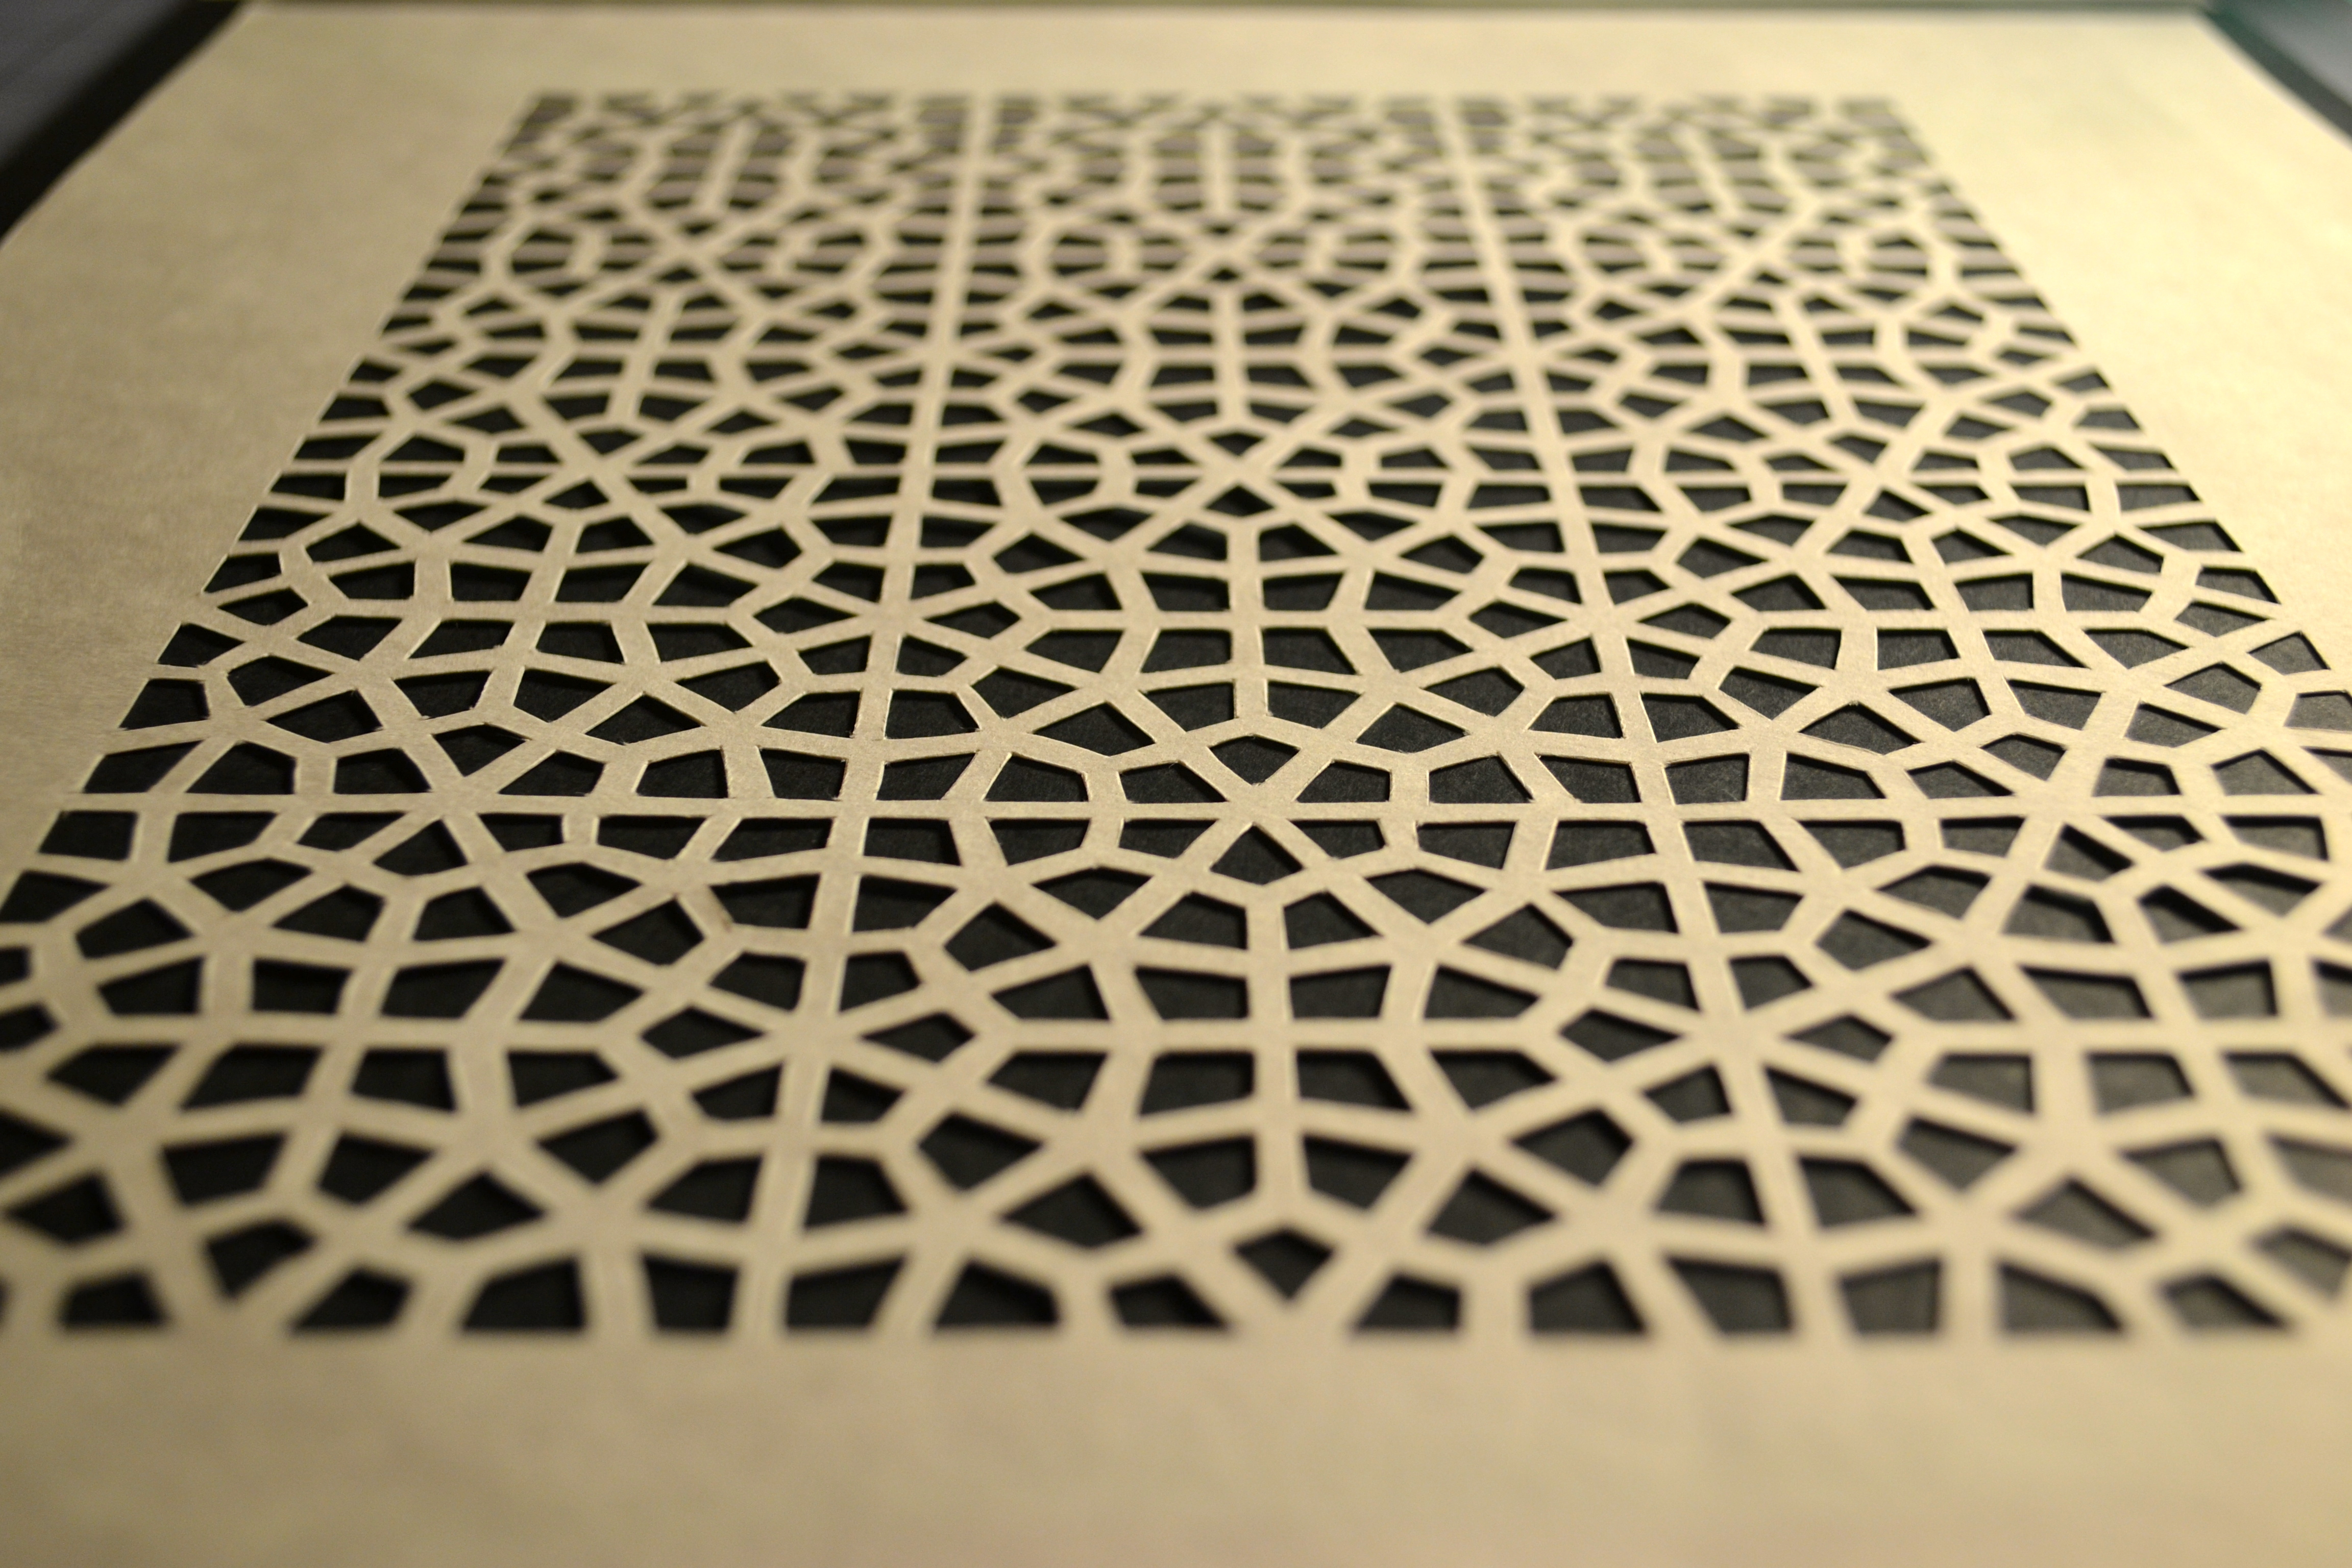 islamic art paper As it is not only a religion but a way of life, islam fostered the development of a  distinctive culture with its own unique artistic language that is reflected in art and .